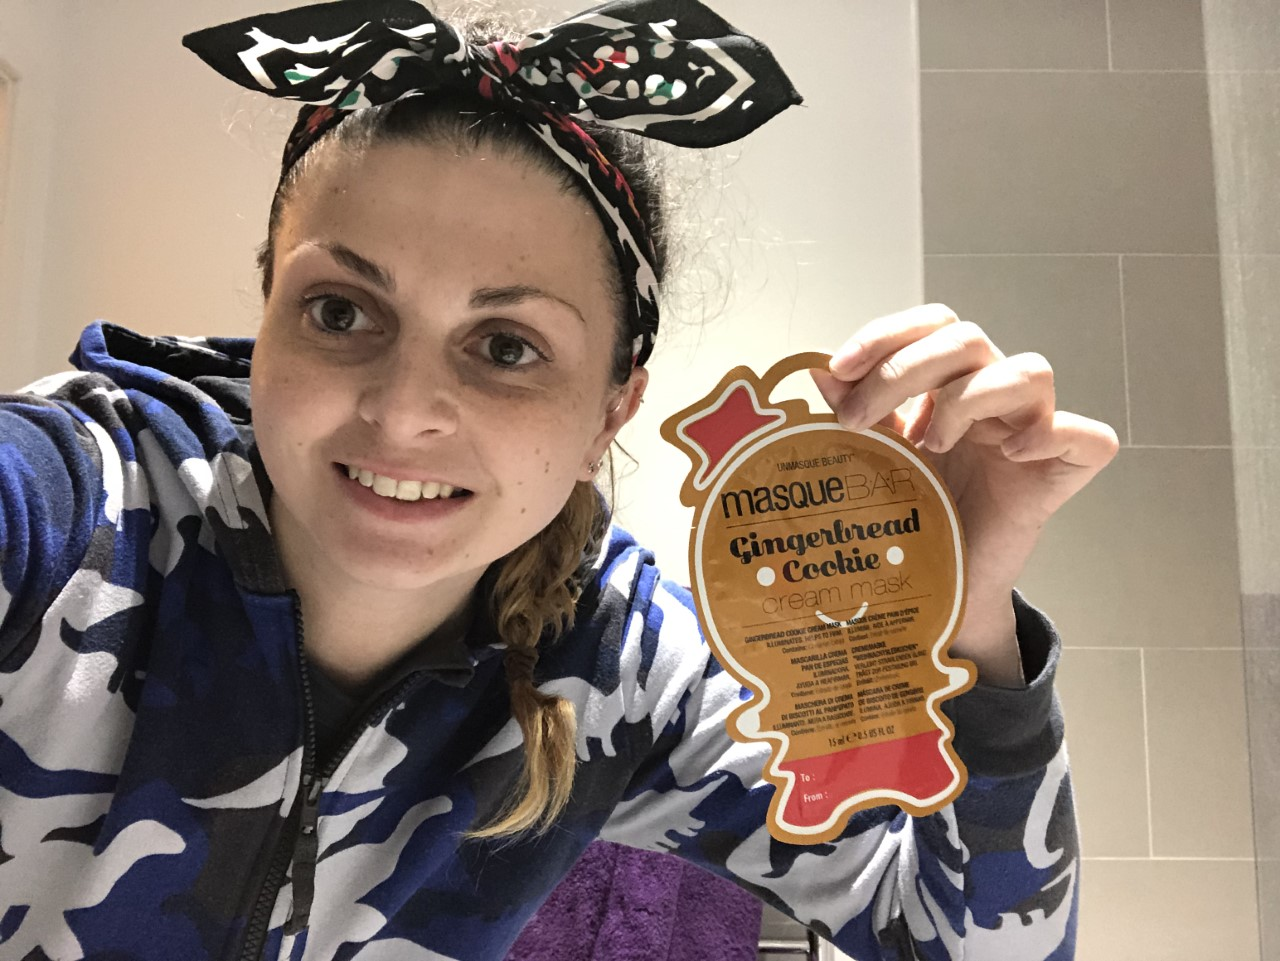 MasqueBar Gingerbread Cookie Cream Mask Review graphic